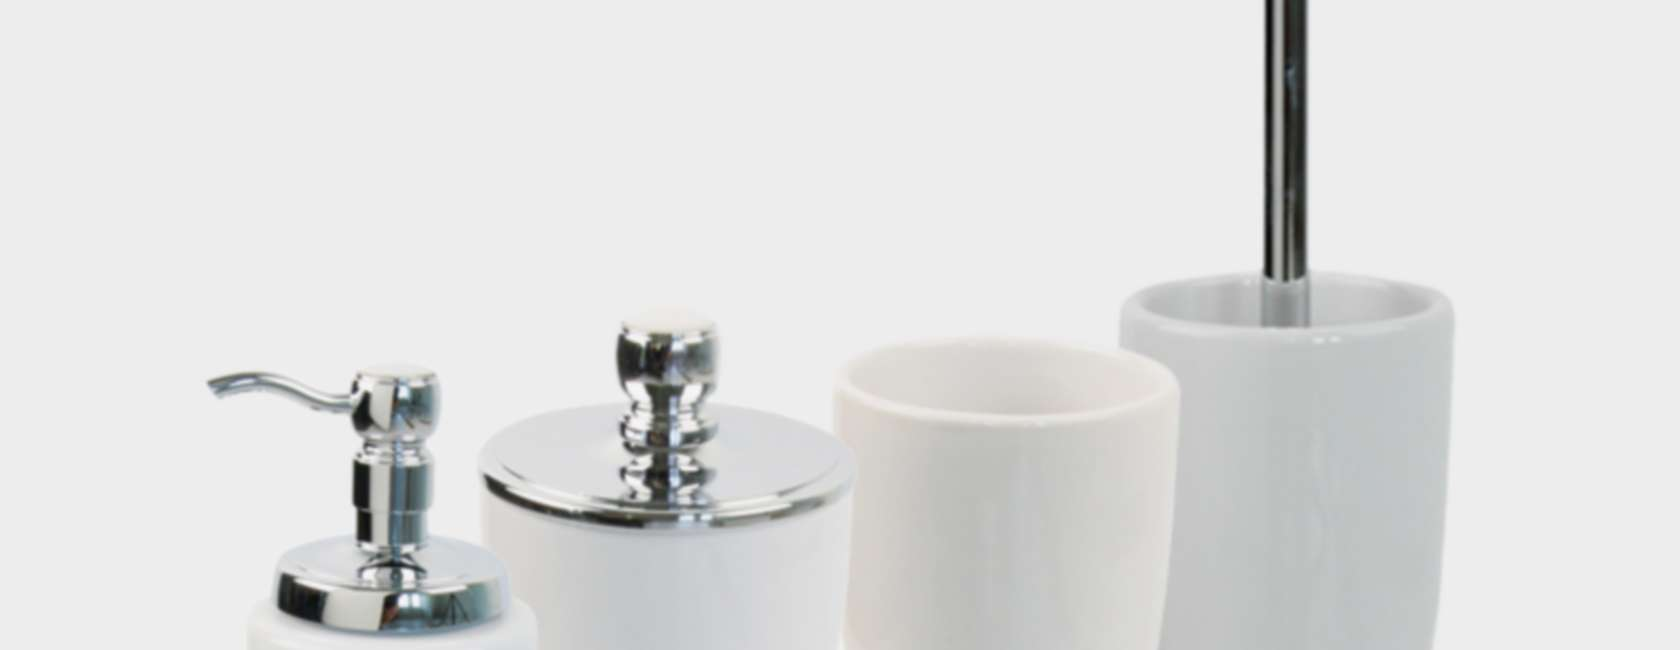 Miller Premium Bathroom Accessories at John Lewis & Partners